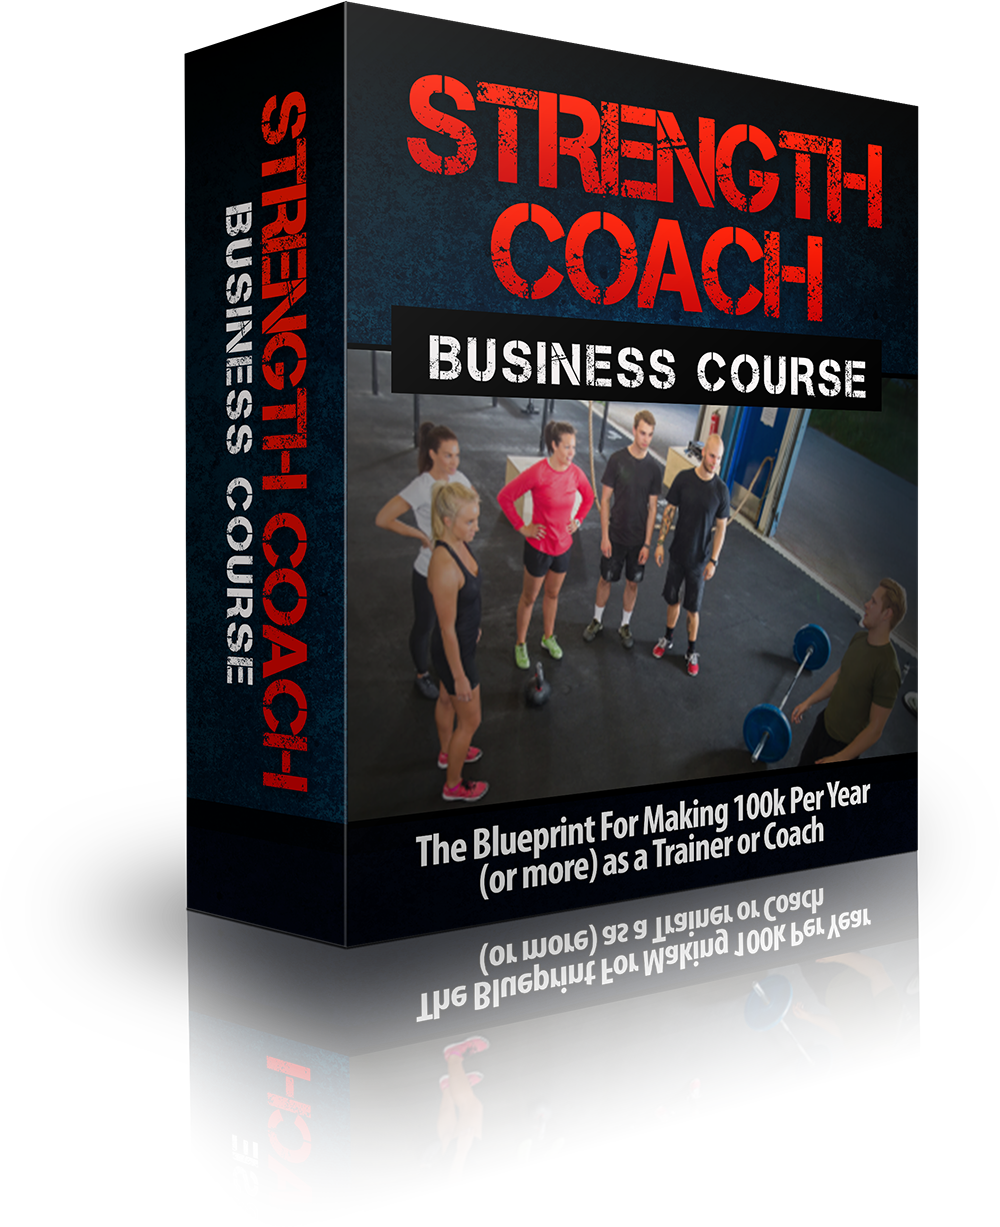 Strength Coach Business Course